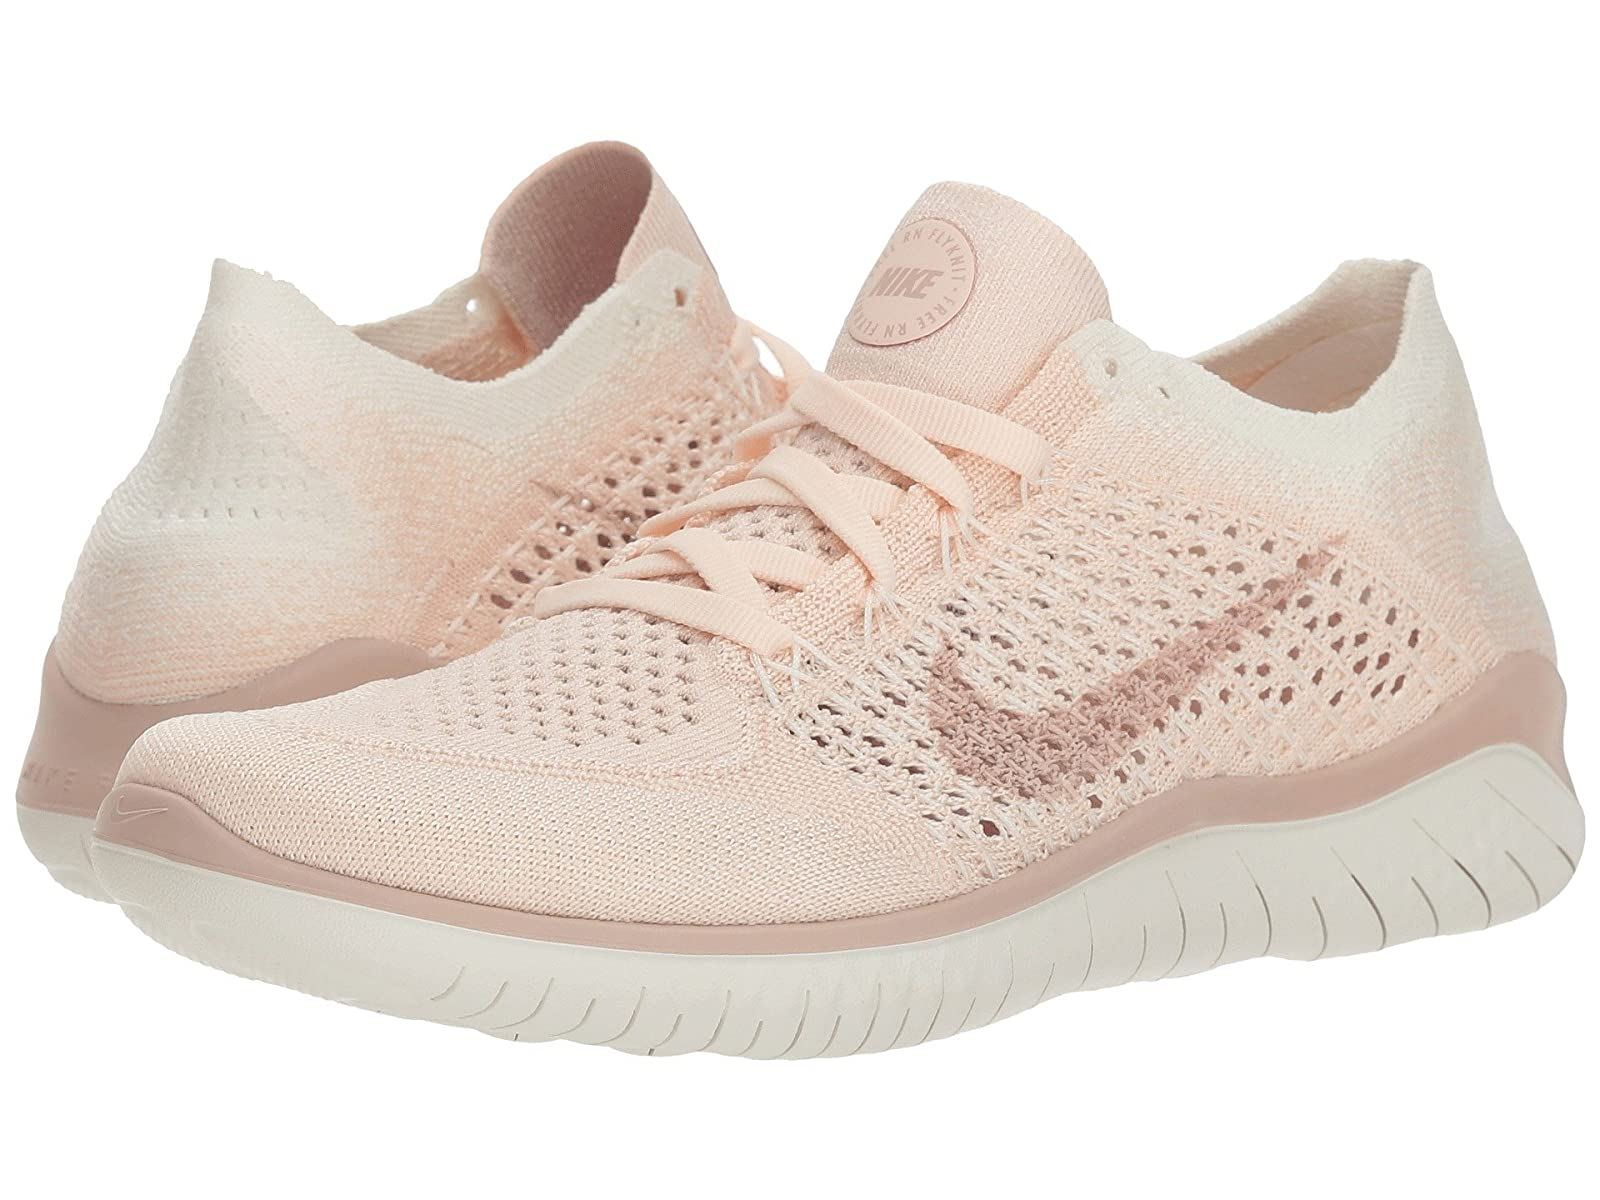 Nike Free RN FlyknitAtmospheric grades have affordable shoes